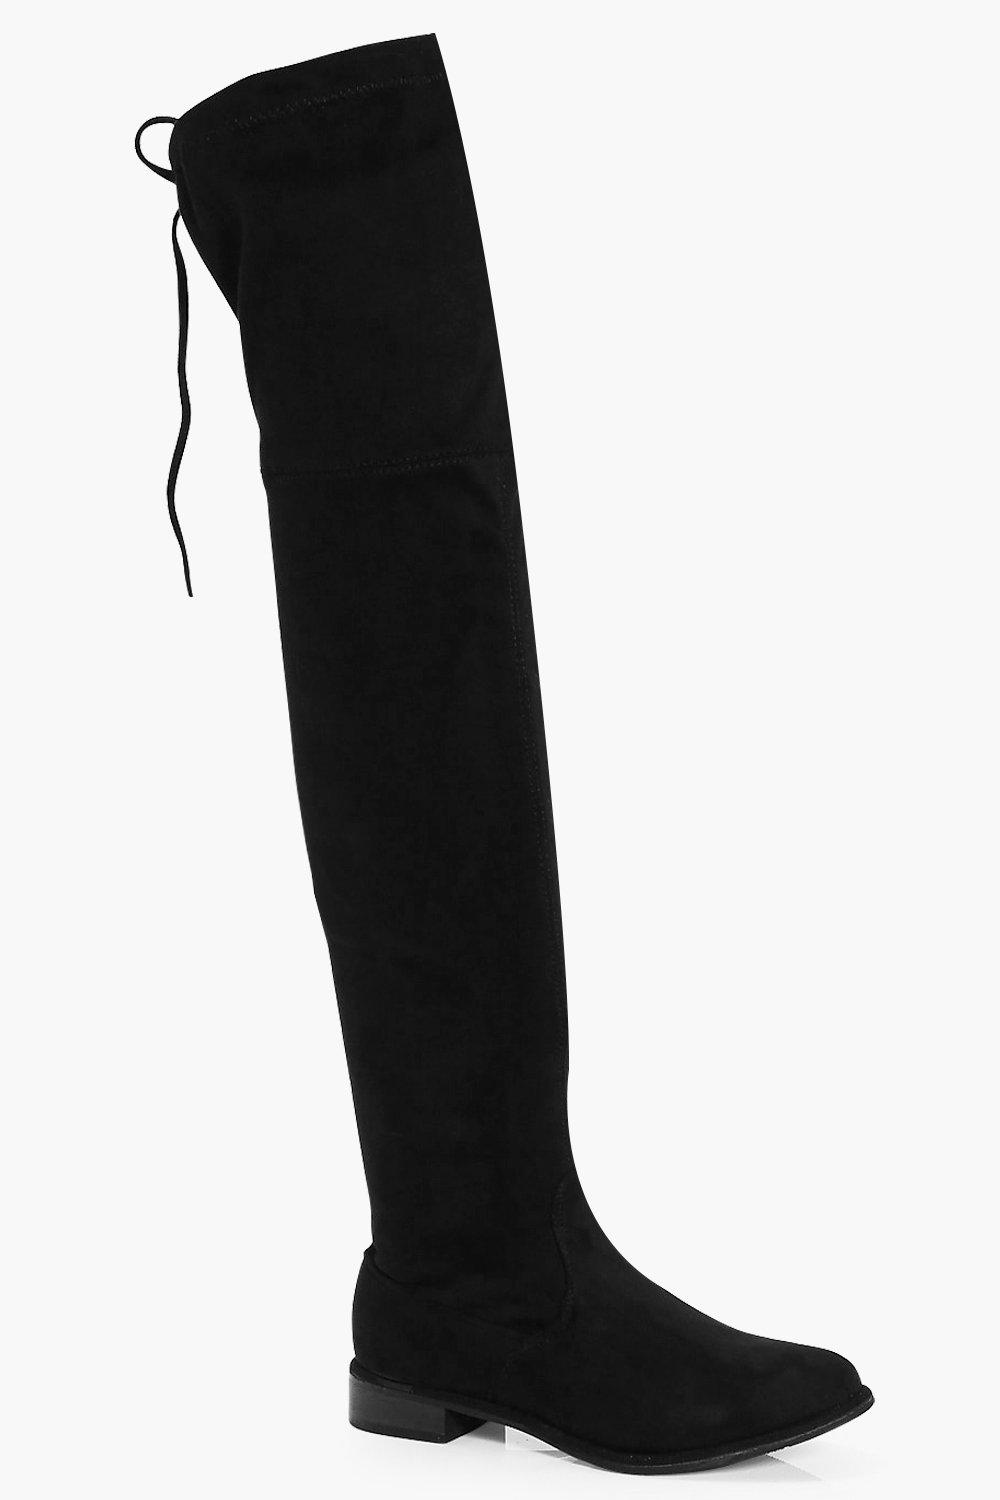 ee89e8b397c Flat Tie Back Thigh High Boots. Hover to zoom